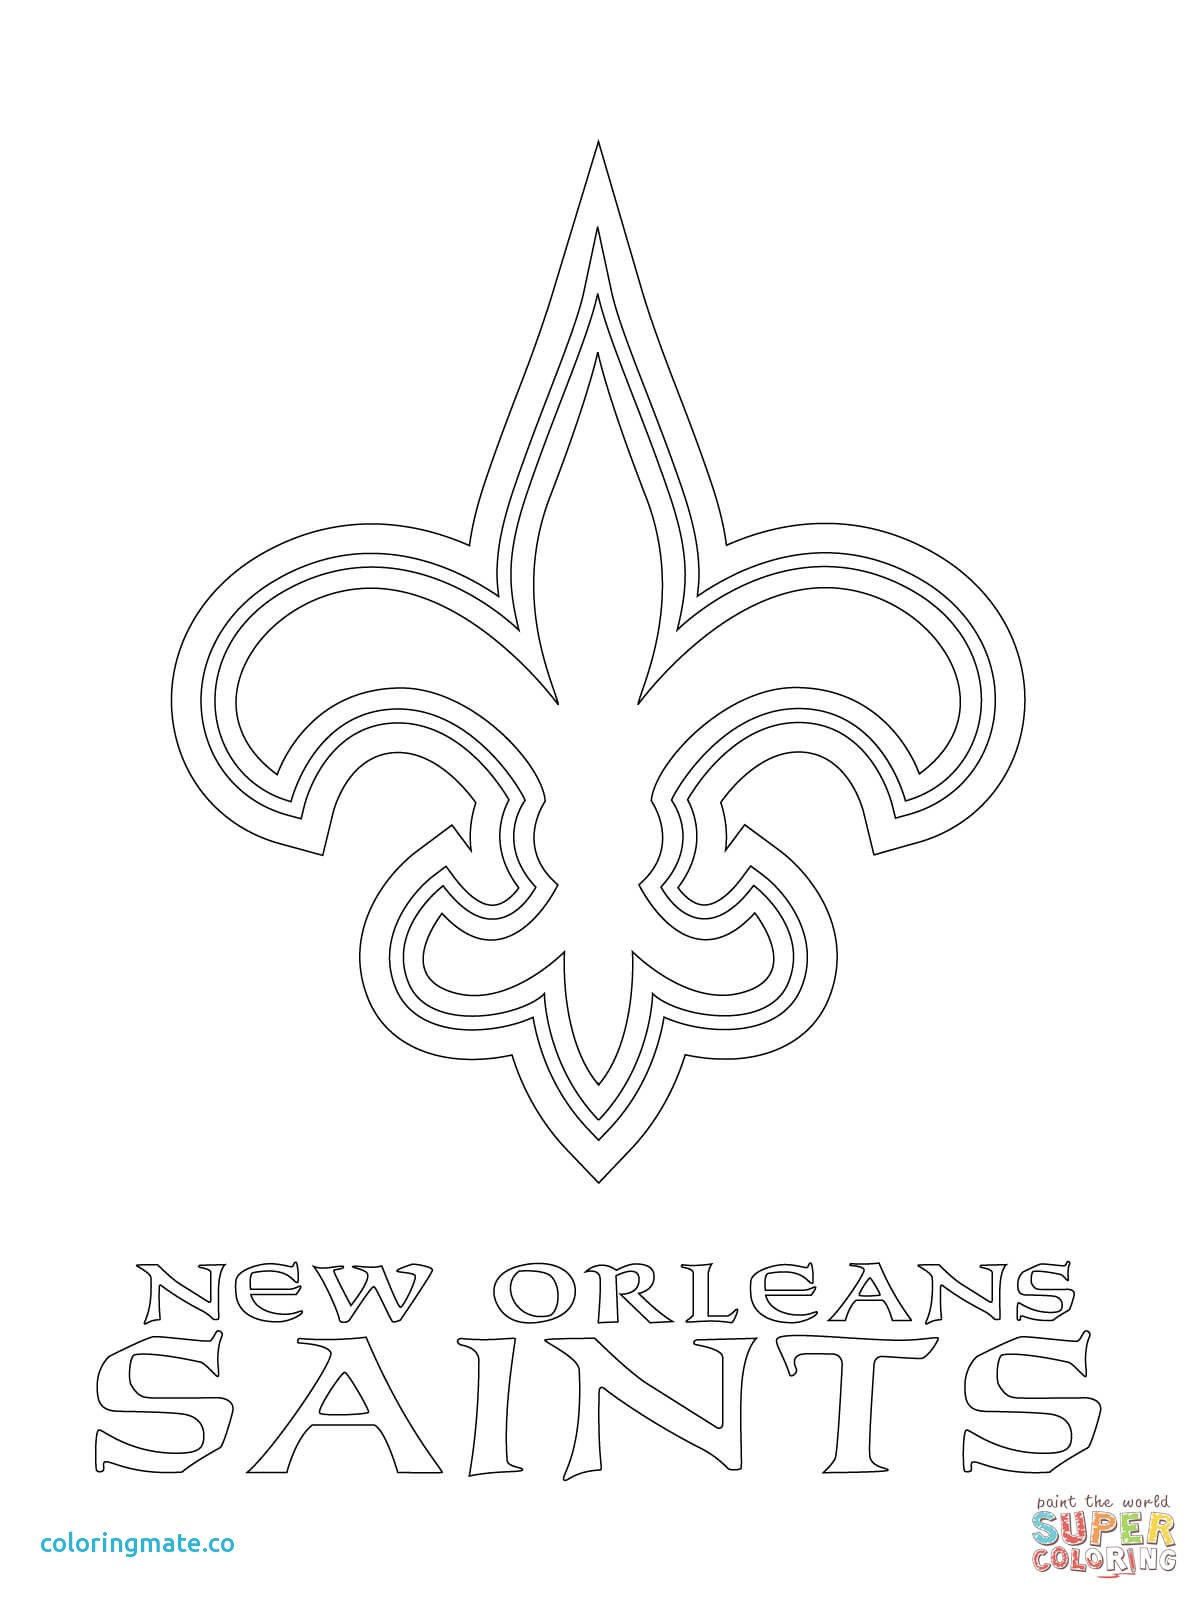 New orleans coloring pages ~ Patriots Logo Drawing at GetDrawings.com | Free for ...